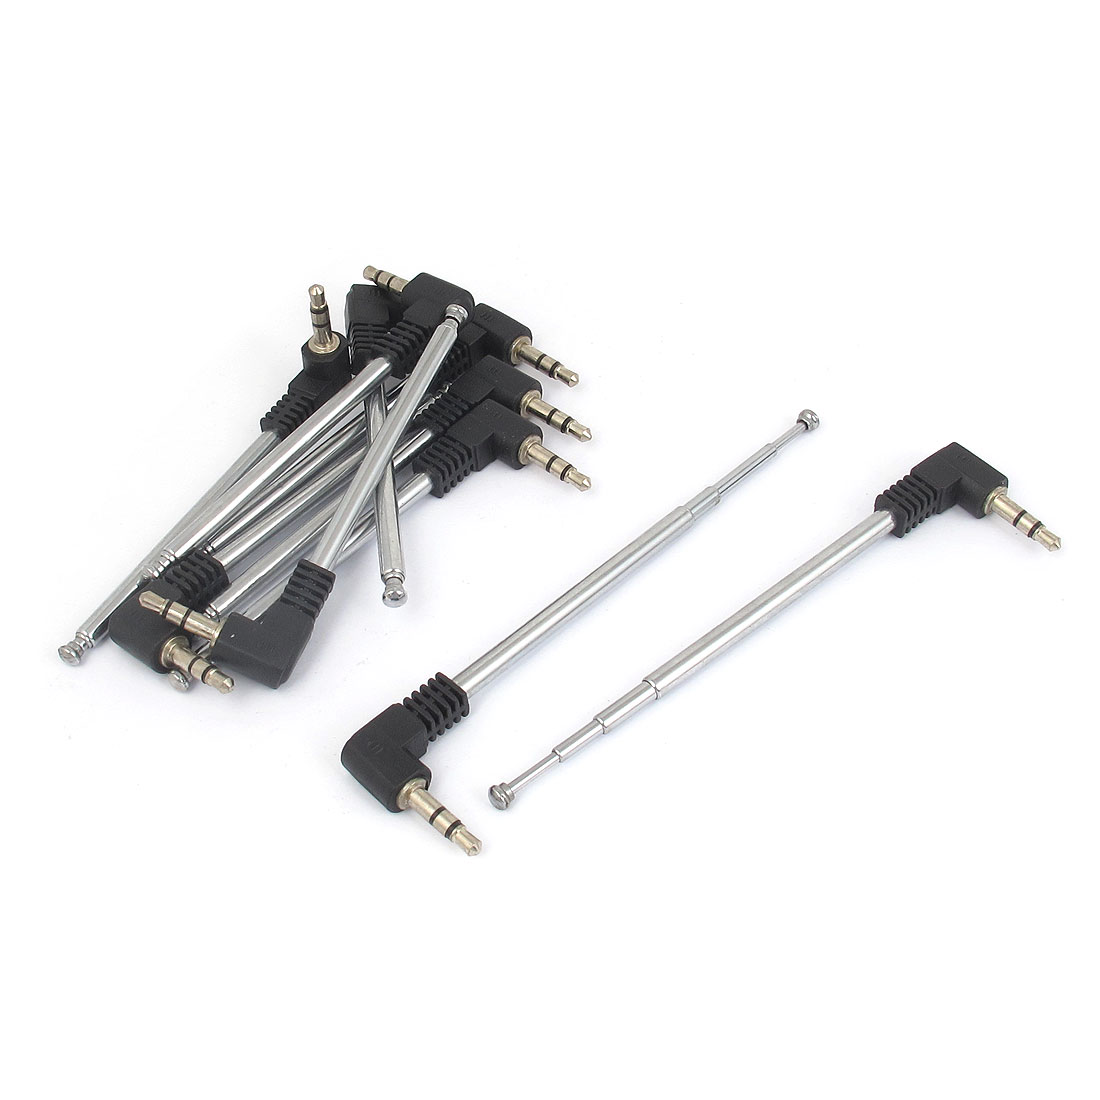 10pcs 3.5mm Adapter Telescopic 4 Sections Antenna Aerial for RC Controller